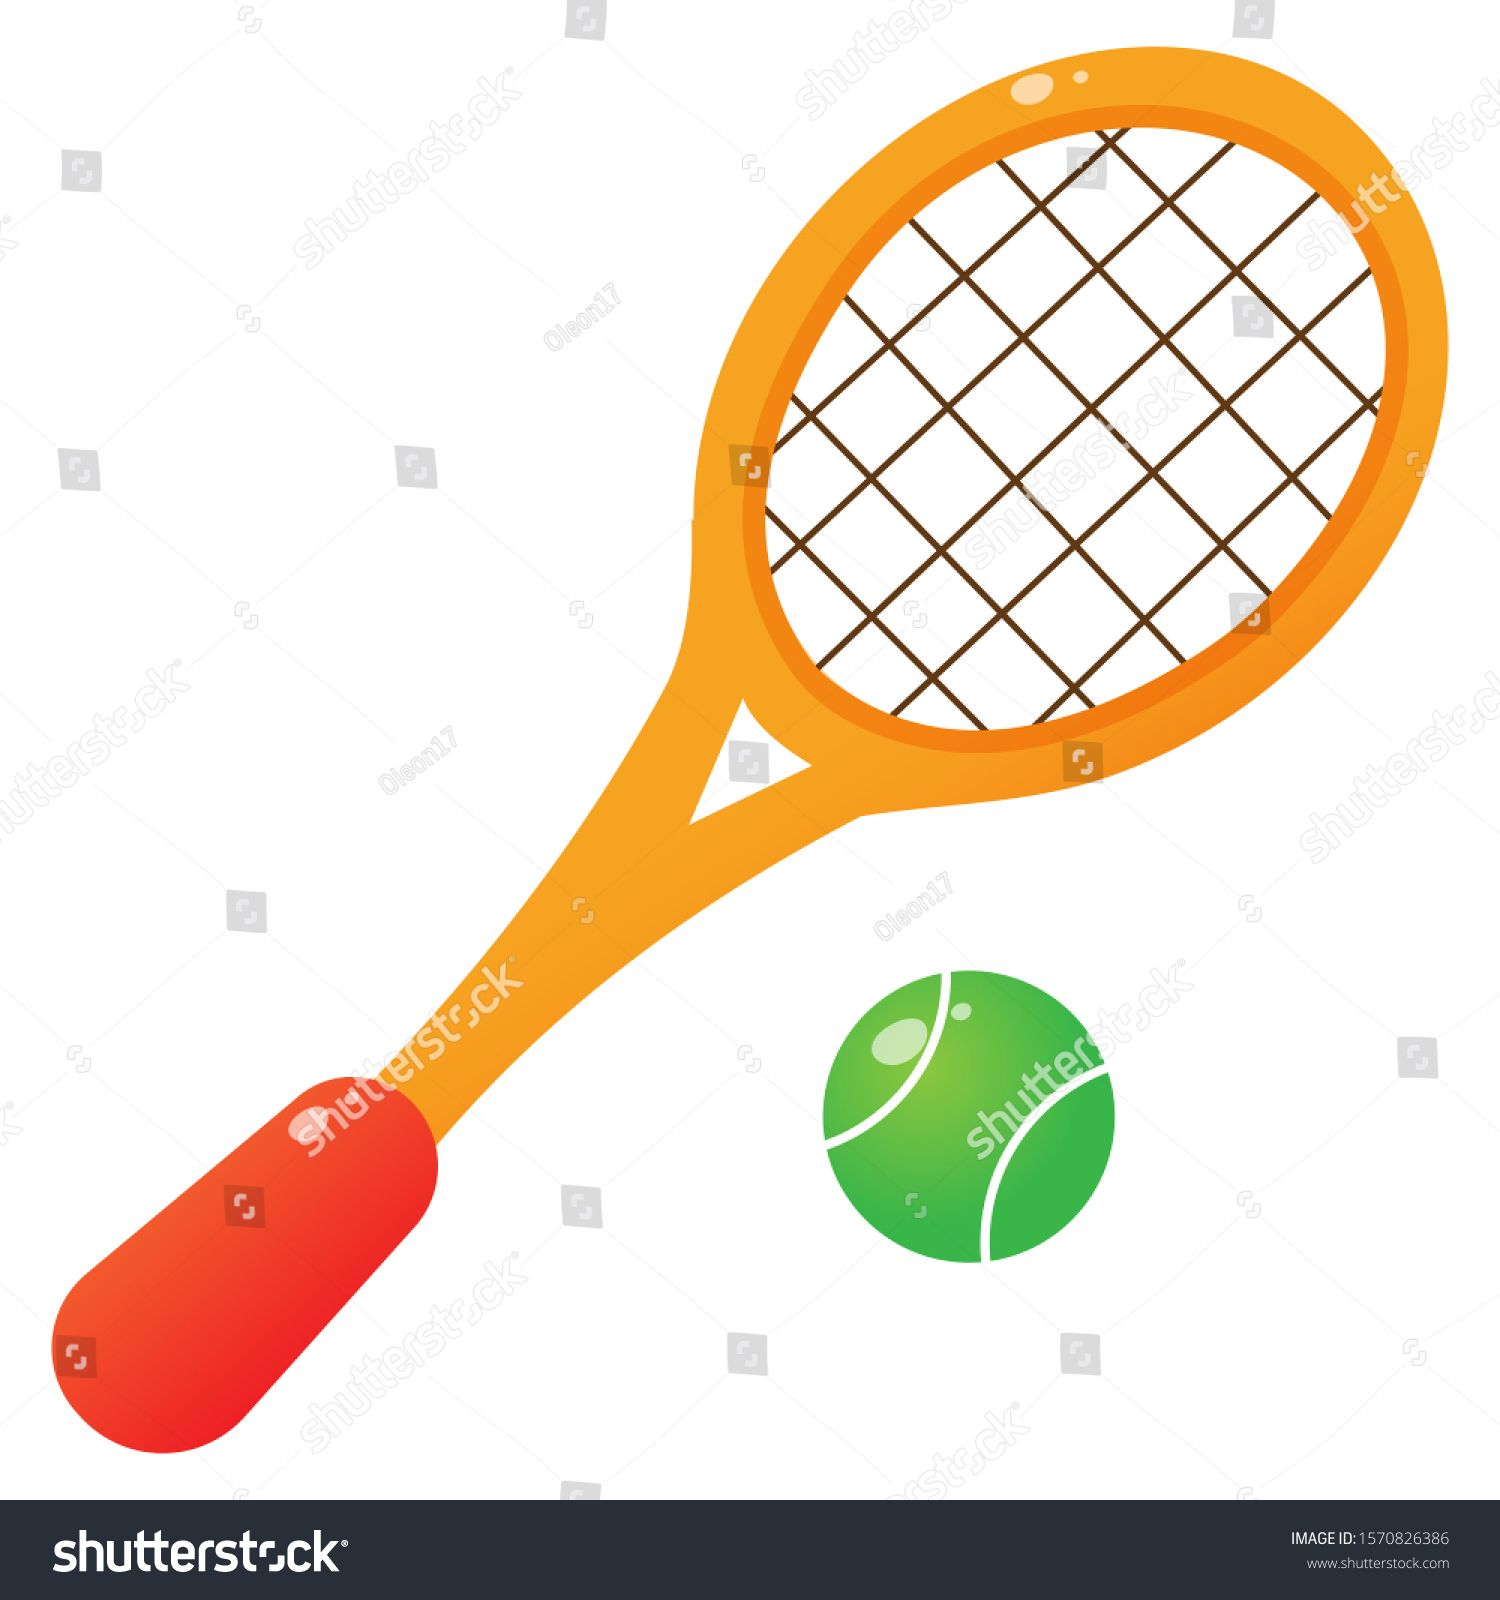 Color Image Of Cartoon Tennis Racket With Ball On White Background Sport Vector Illustration Ad Ad Tennis Racket Cartoon Color